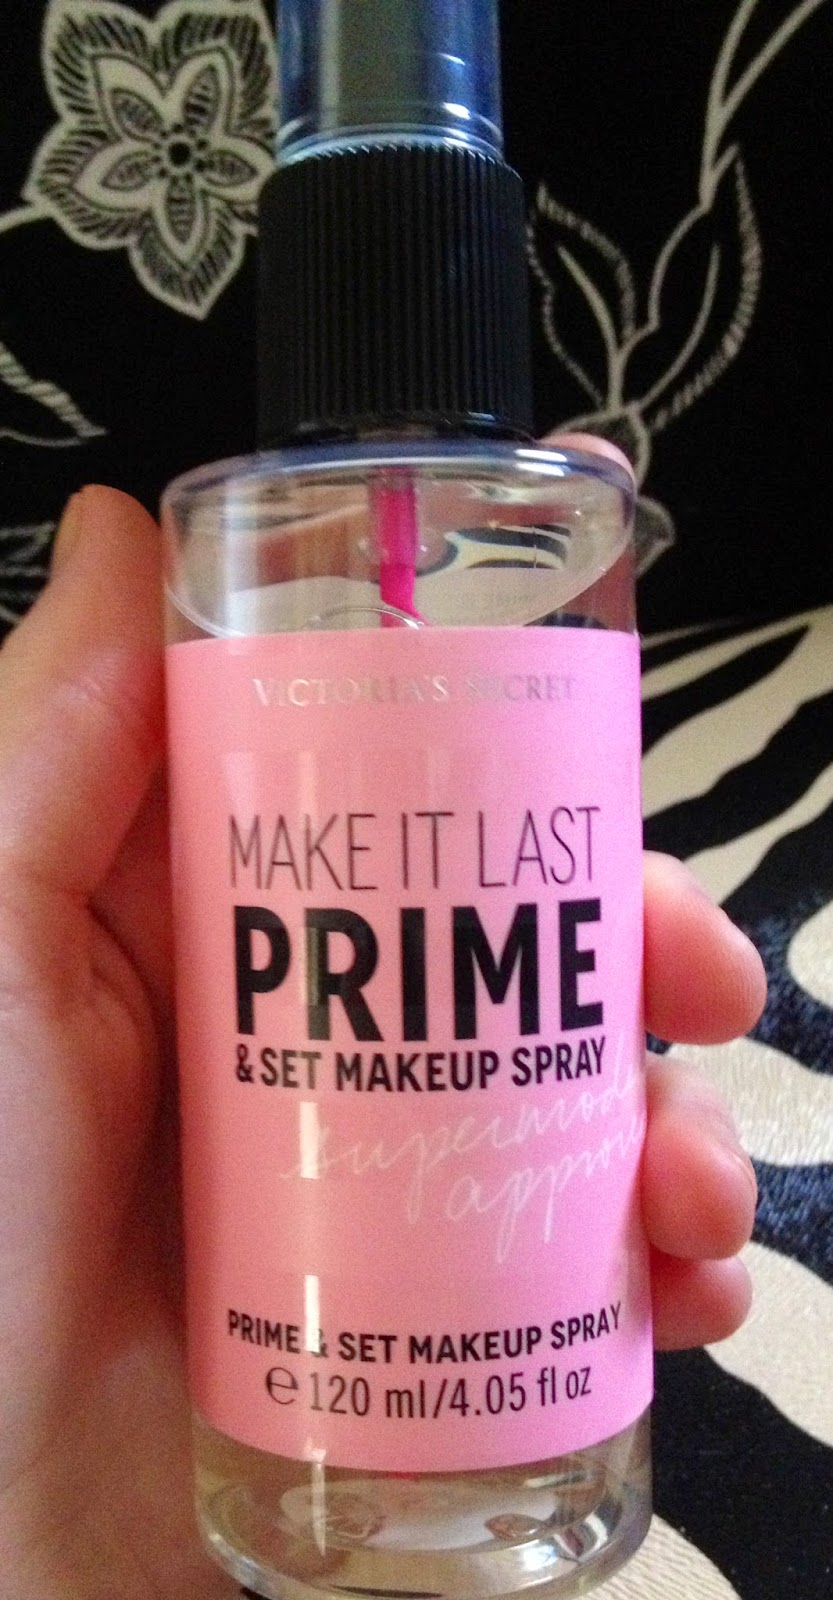 http://www.amazon.com/Victorias-Secret-Prime-Primer-Setting/dp/B00D0NL2U6/ref=sr_1_1?ie=UTF8&qid=1425699806&sr=8-1&keywords=victoria+secret+setting+spray